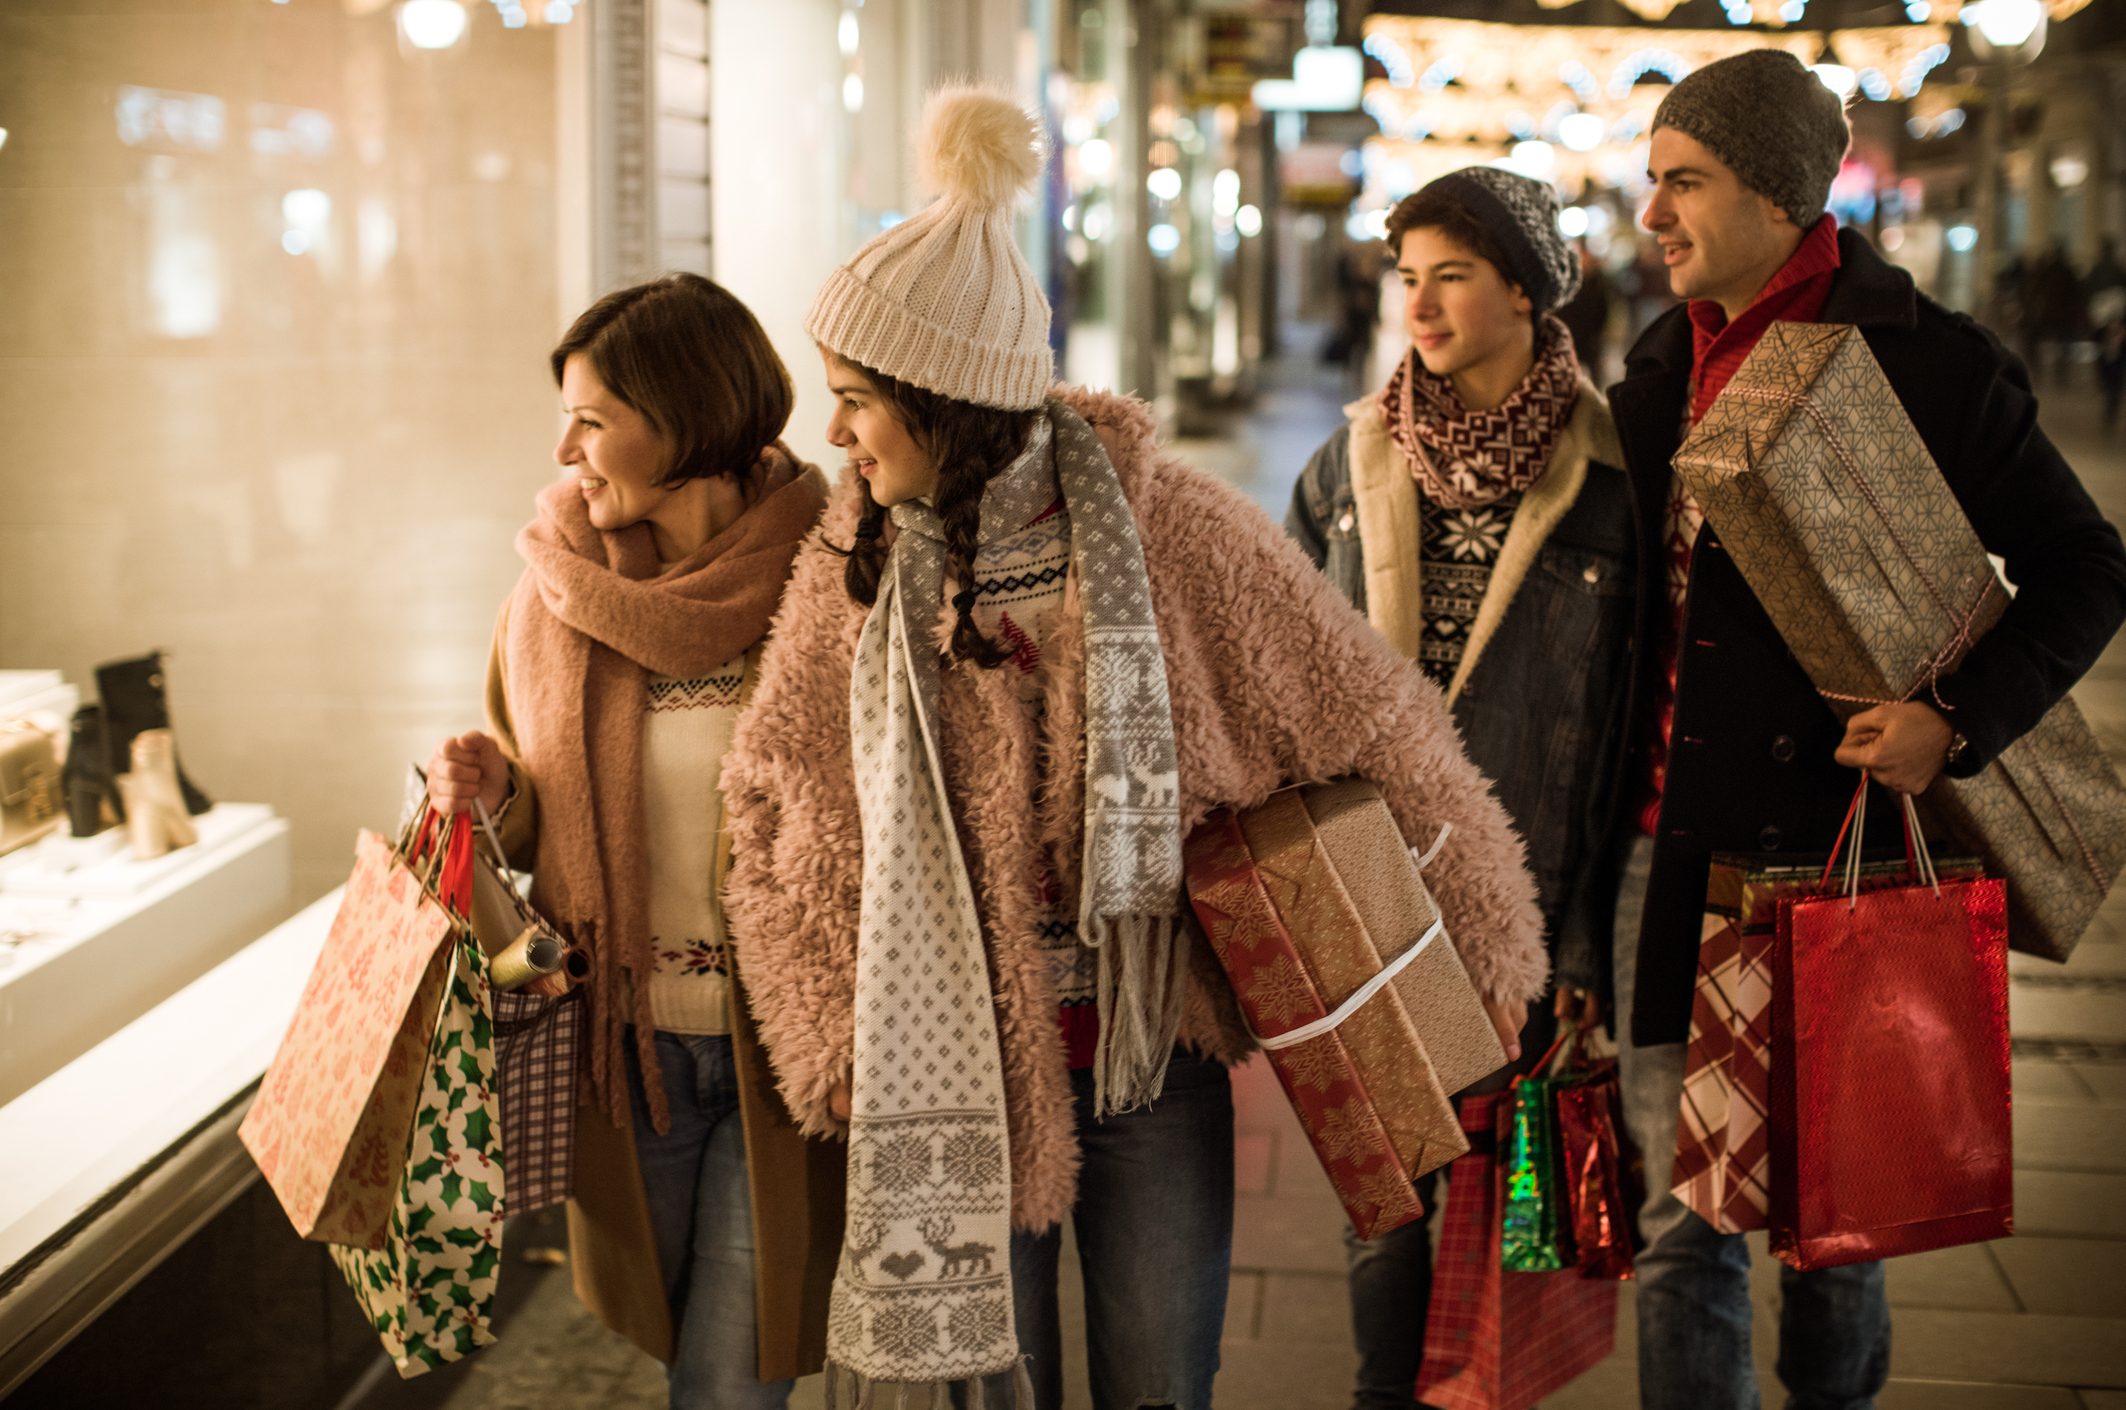 How to Avoid Common Holiday Shopping Injuries